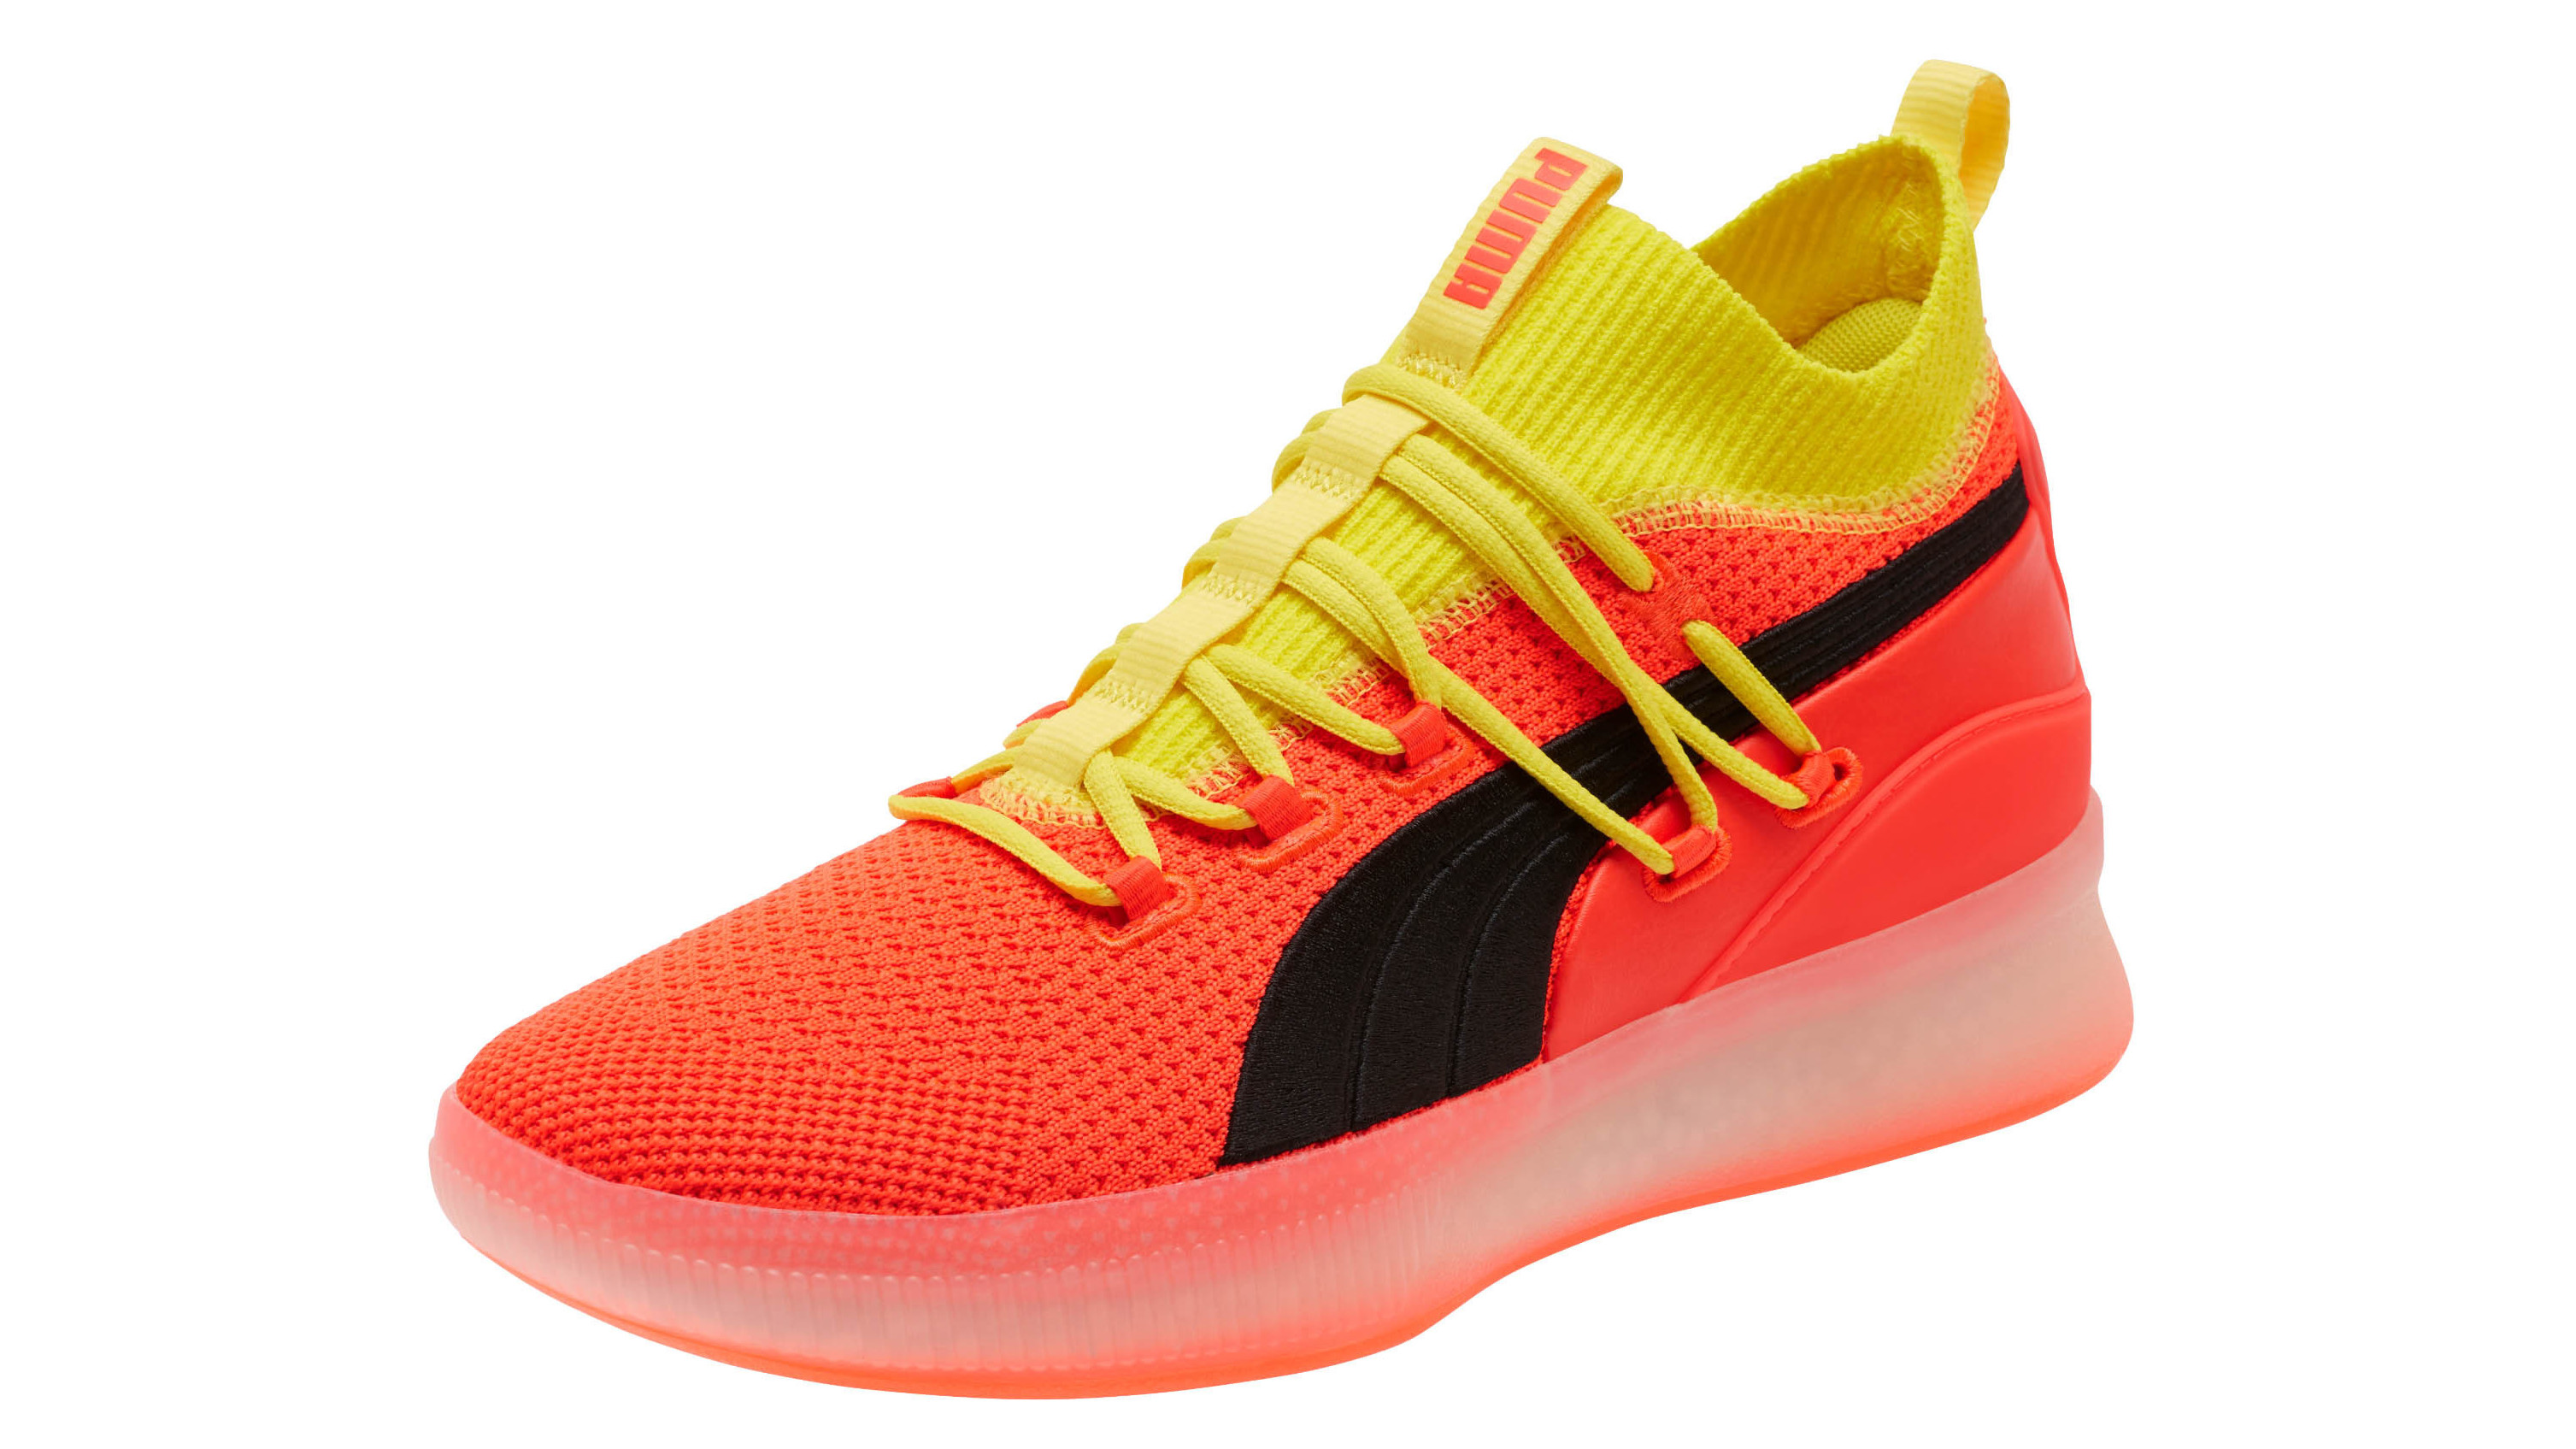 Puma Clyde Court Disrupt Performance Review | Sole Collector